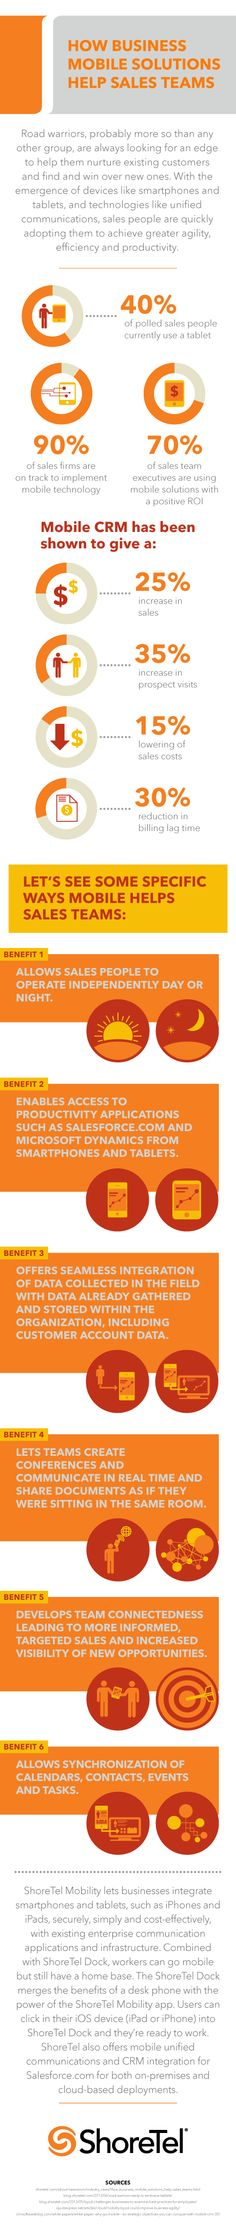 How Mobile Devices for Businesses Increase Productivity [Infographic] - Automotive Digital Marketing Professional Community